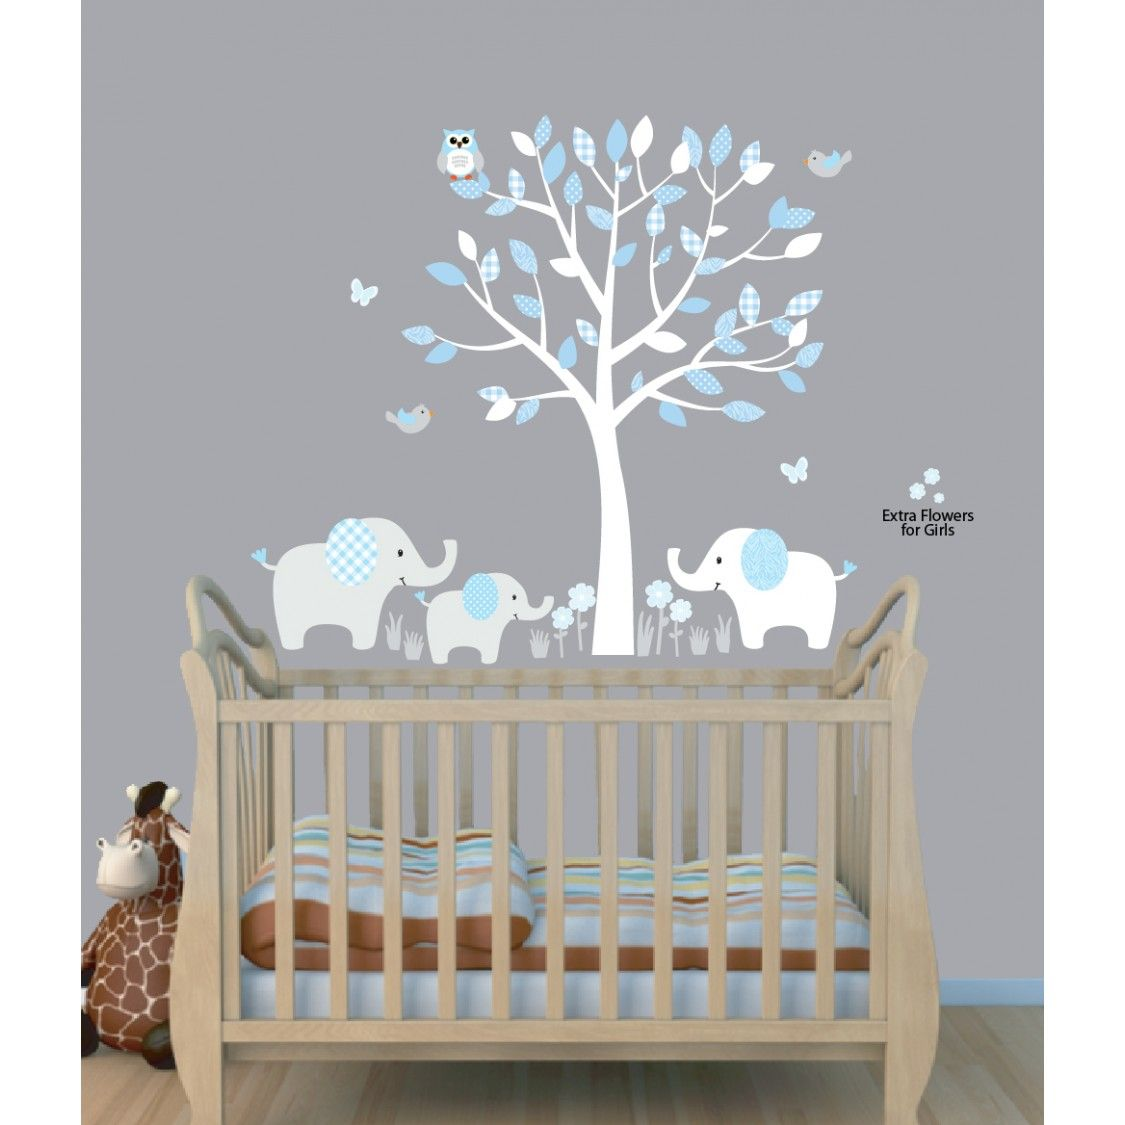 Baby Nursery Decor Elephants Below Beautiful Tree Baby Boy - Baby boy nursery wall decals